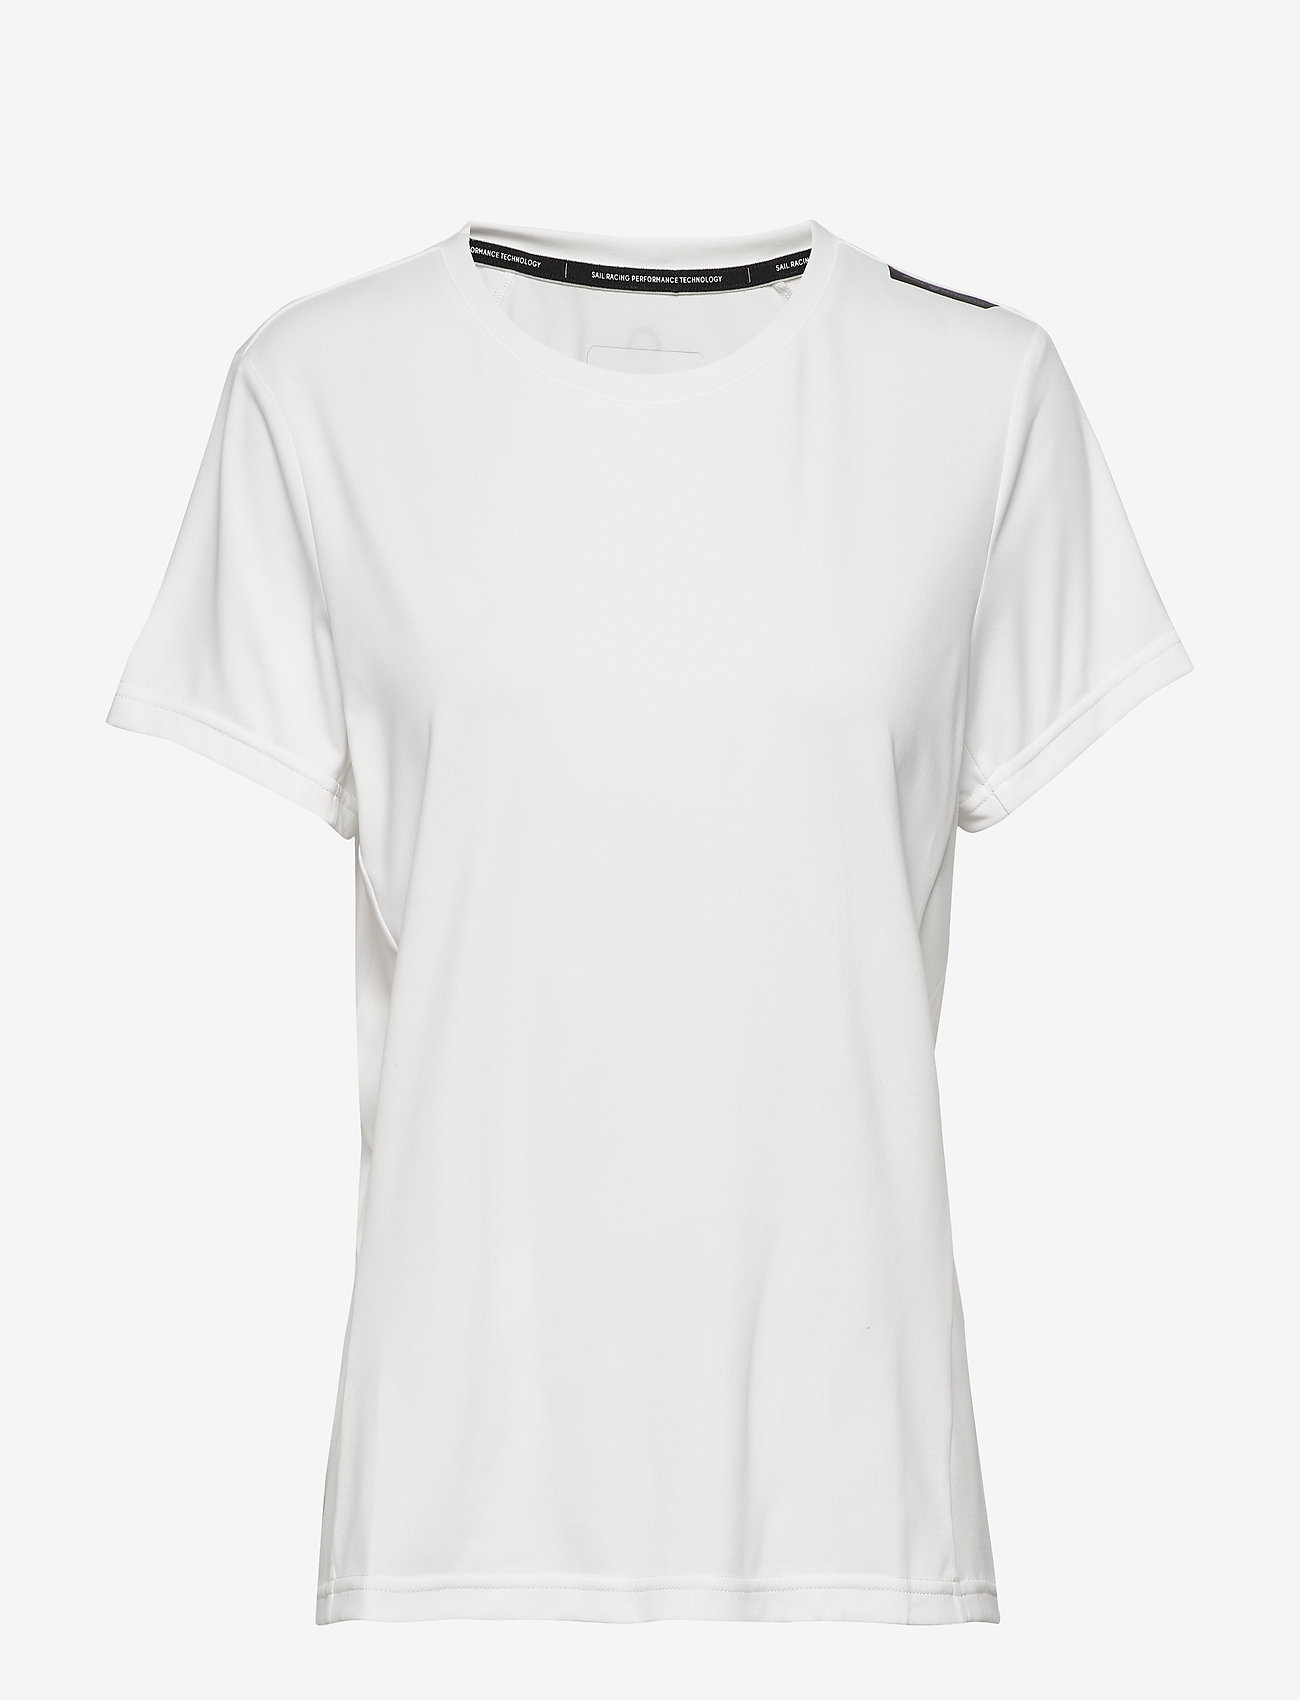 Sail Racing - W GALE TECHNICAL TEE - t-shirts - white - 0